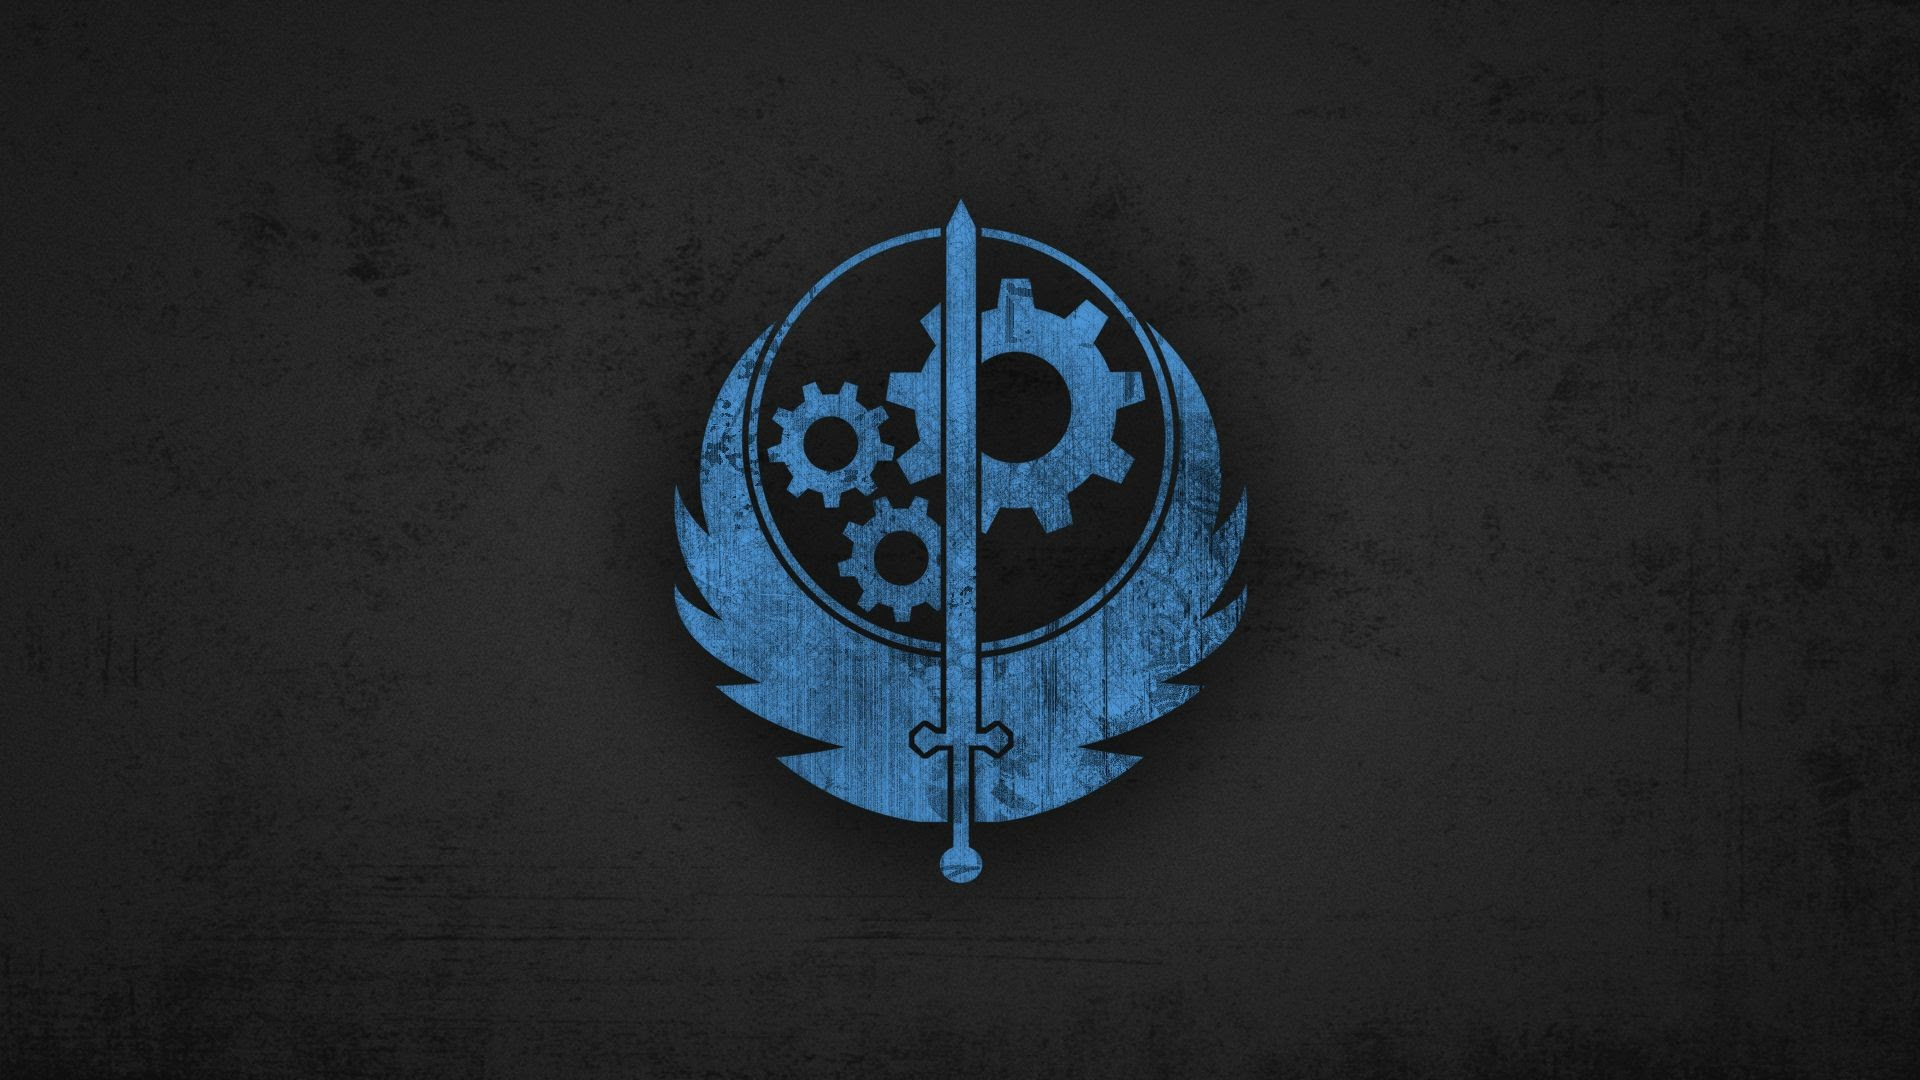 Fallout Brotherhood Of Steel Wallpaper 75 Images